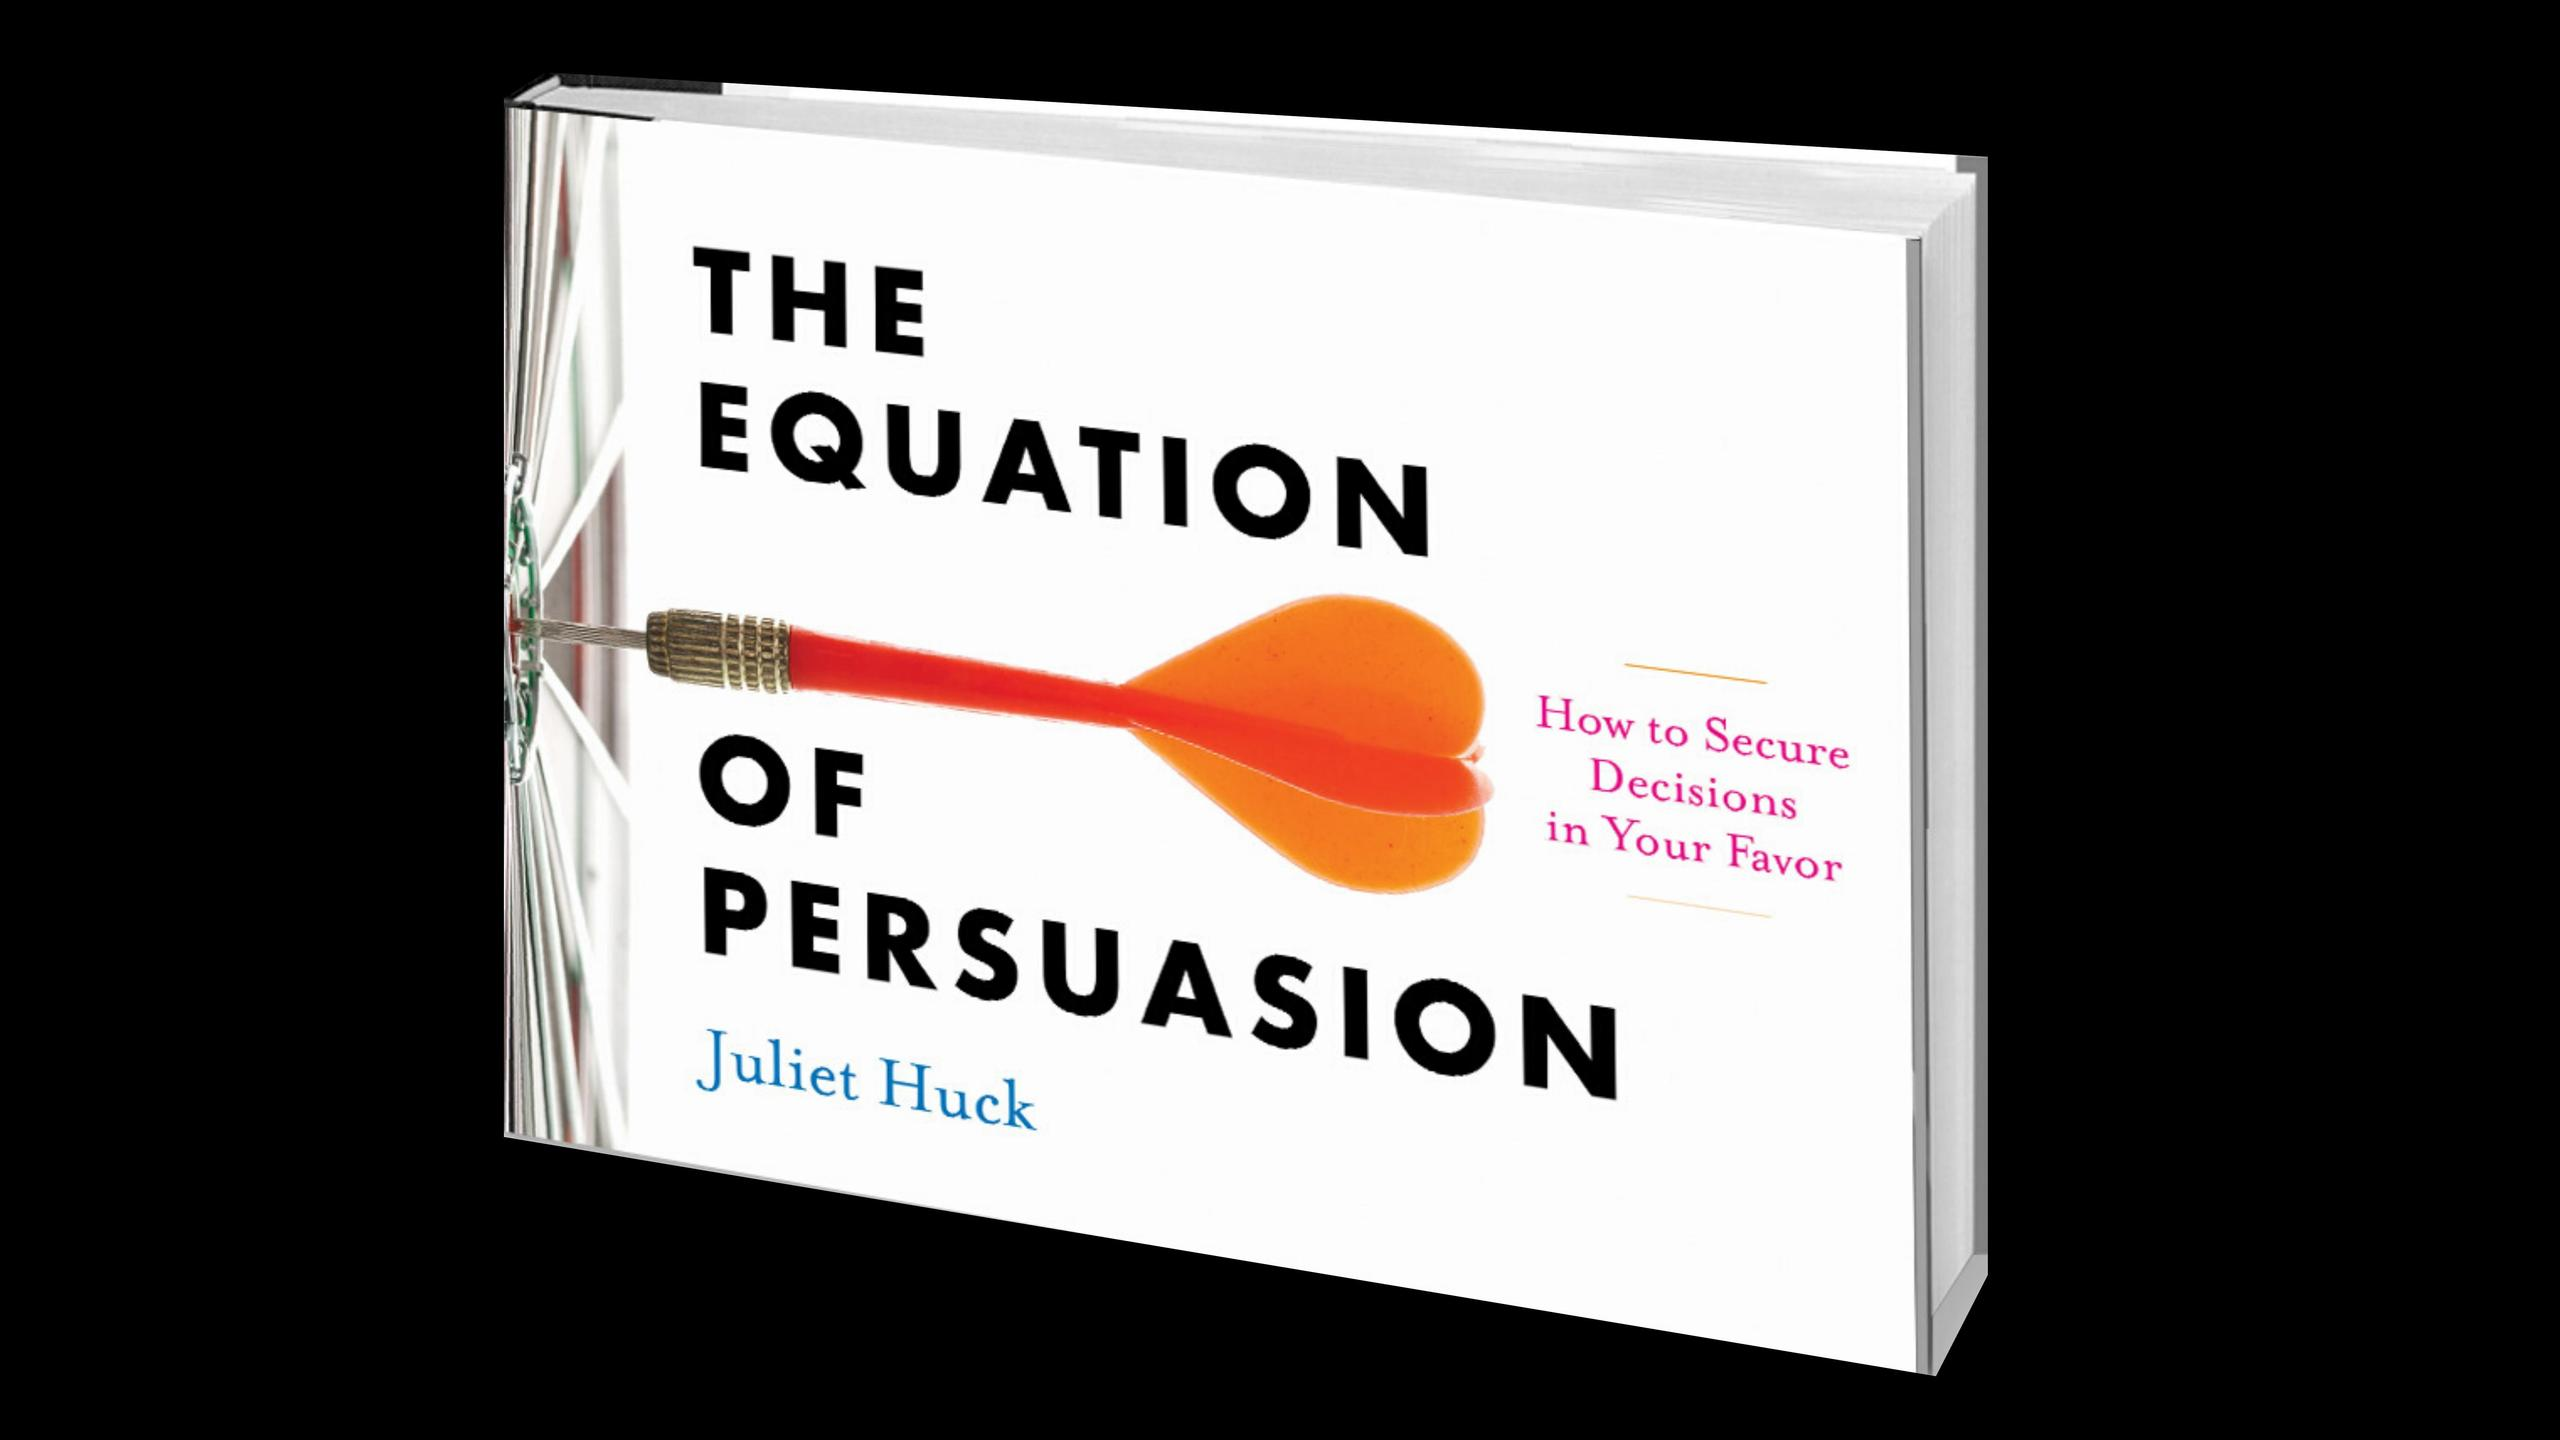 The Equation of Persuasion